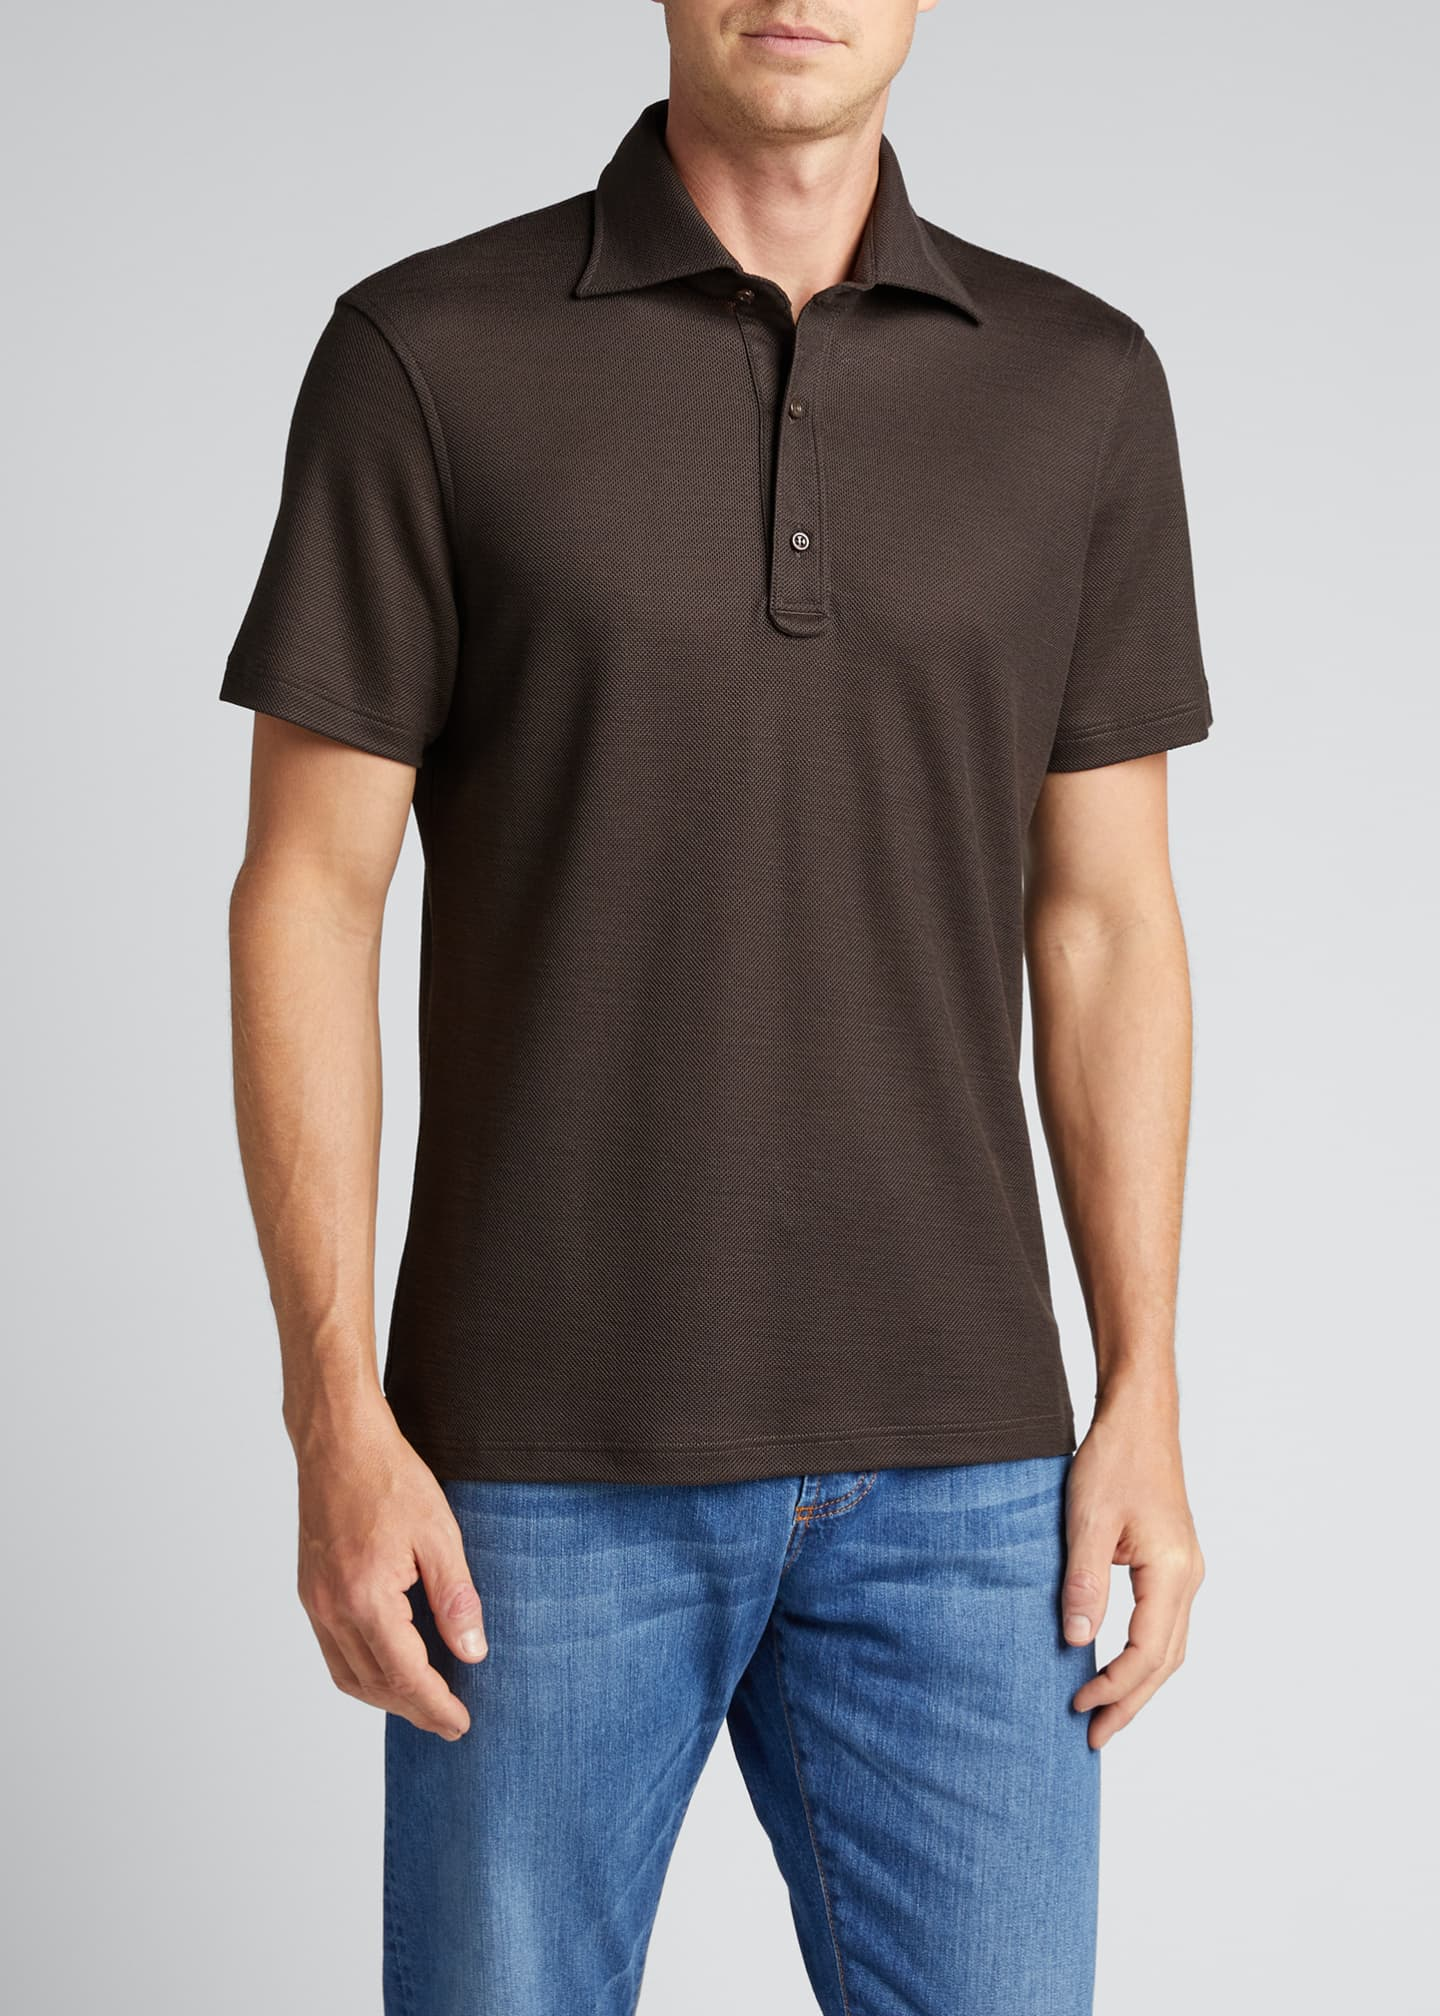 Image 3 of 5: Men's Grand Pique Wool Polo Shirt